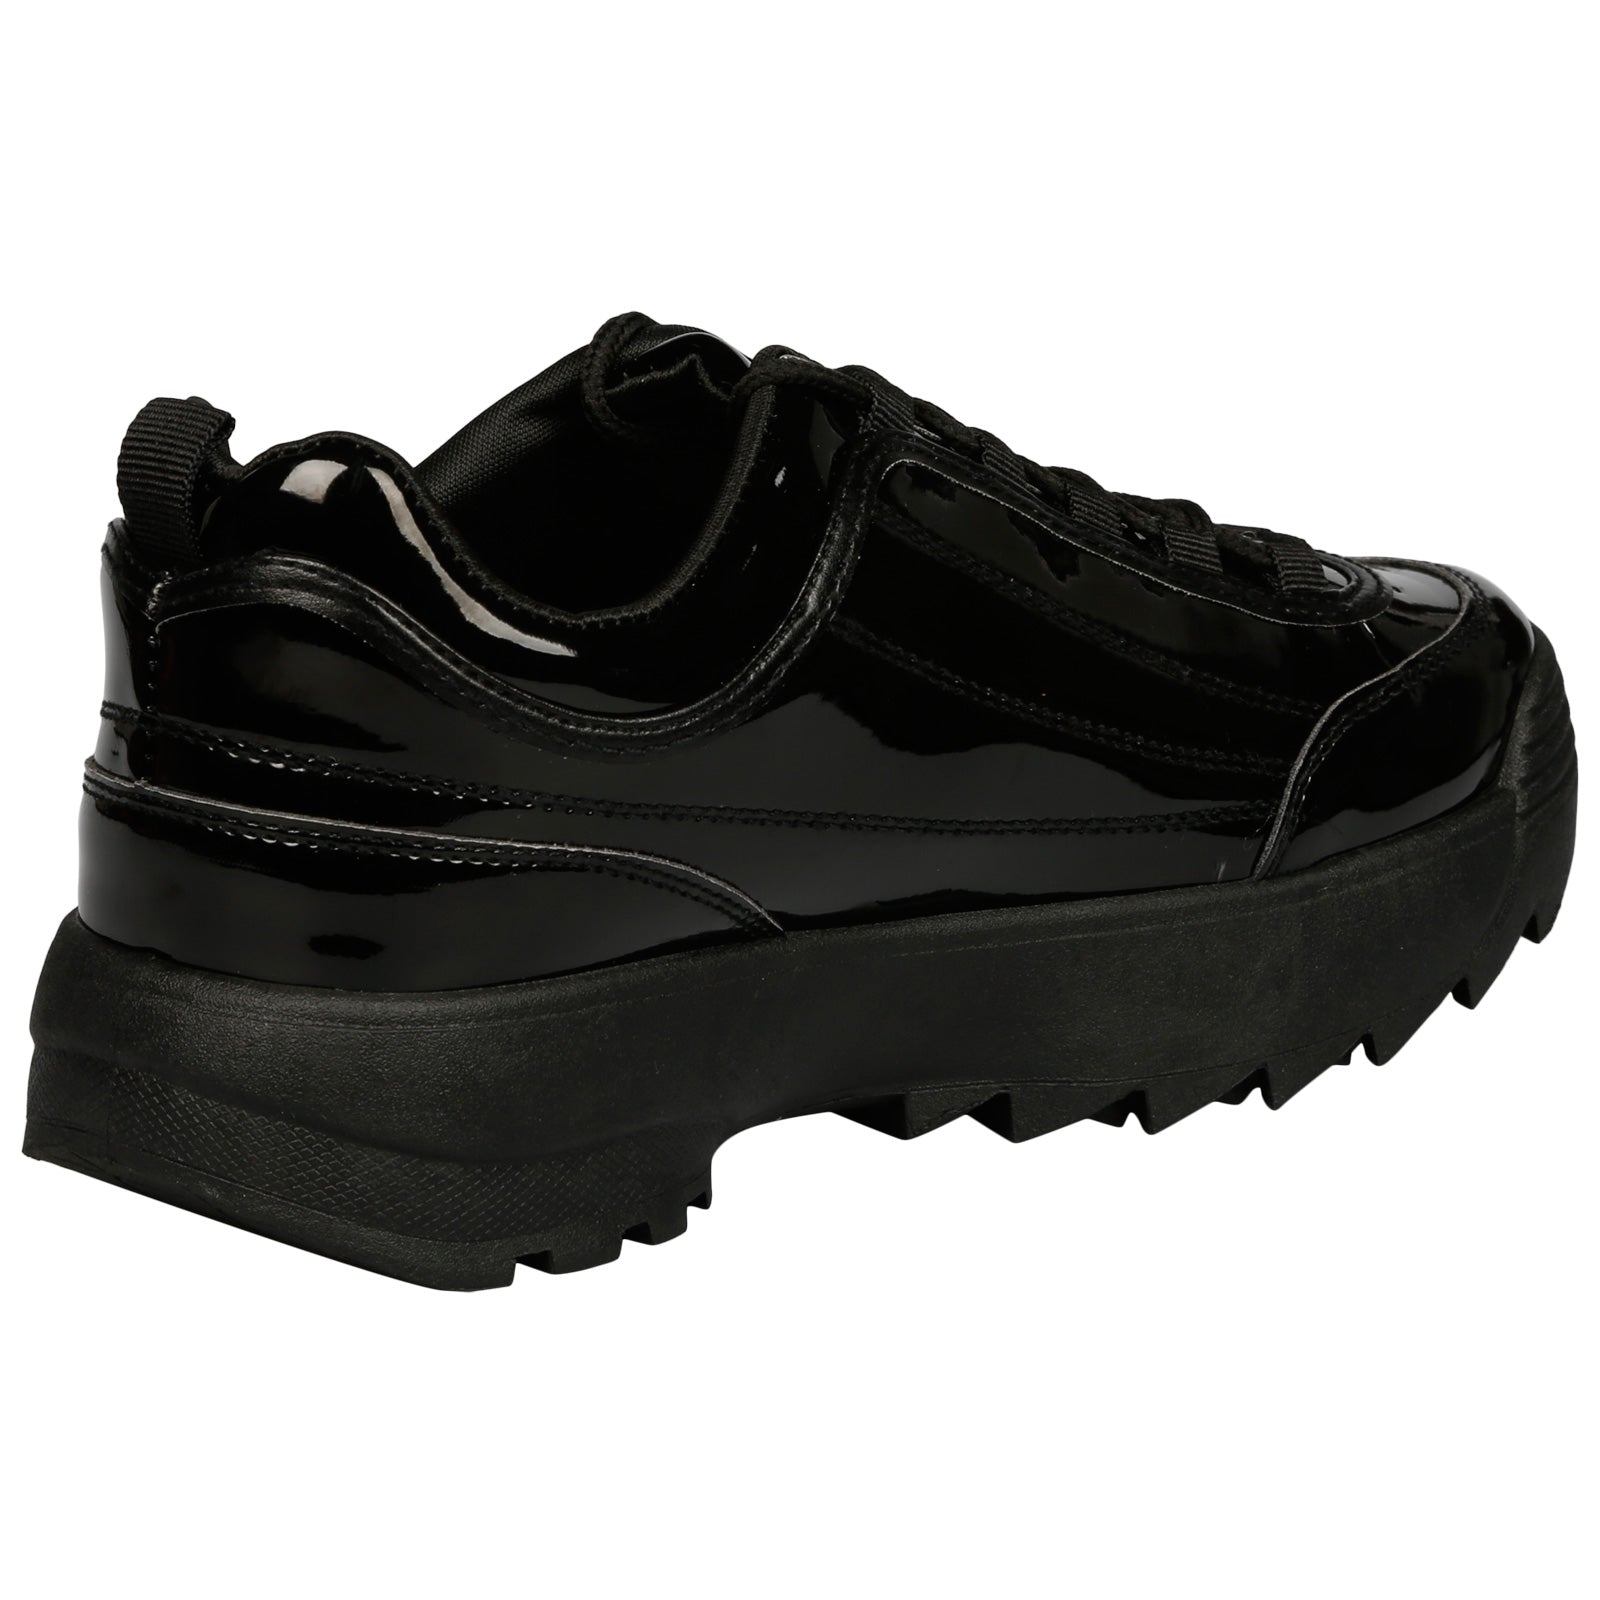 Emmie Chunky Lace Up Trainers in Black Patent - Feet First Fashion